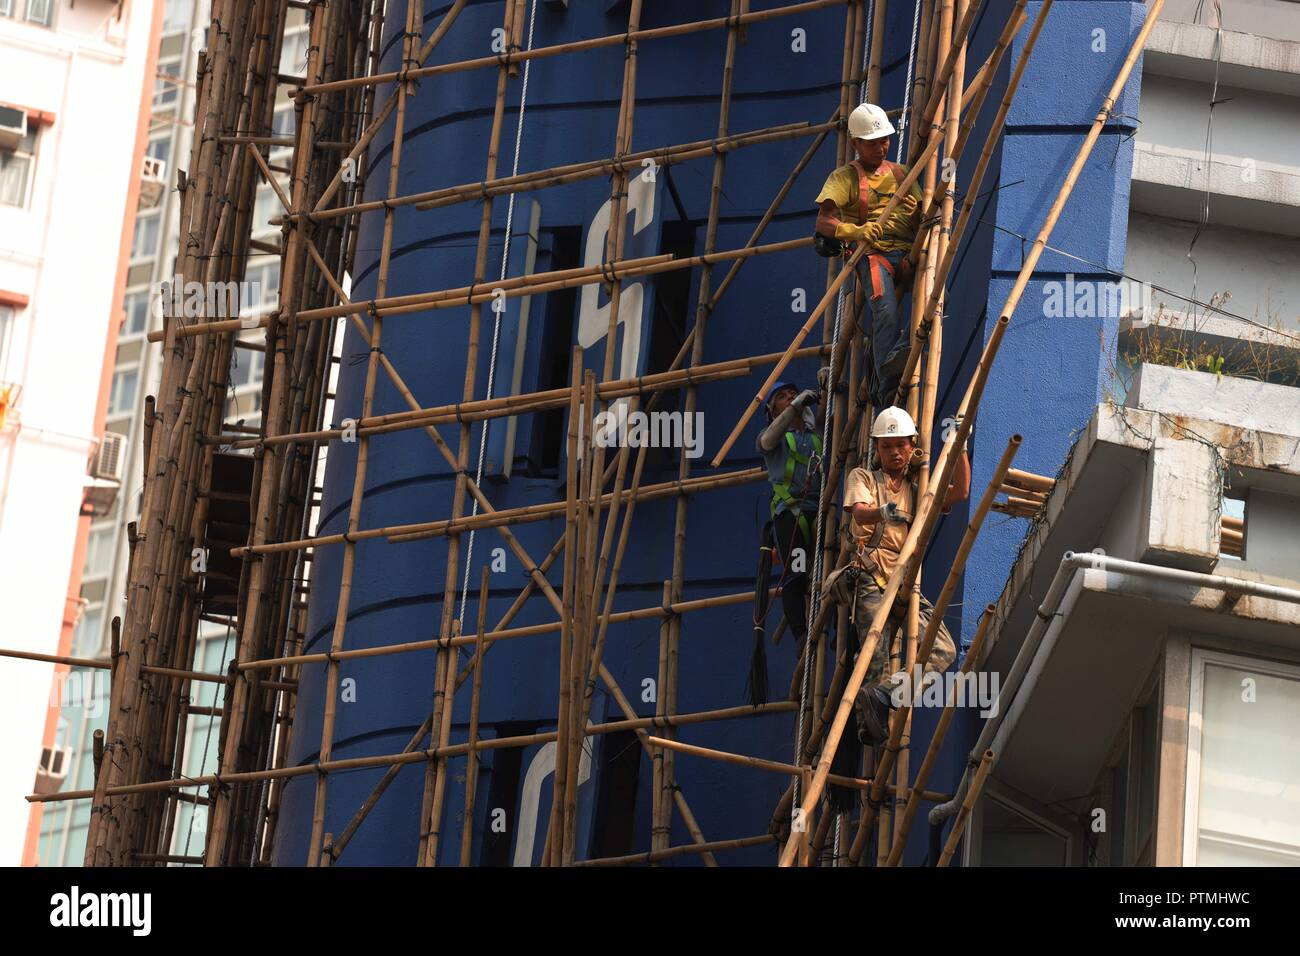 Hong Kong, CHINA. 10th Oct, 2018. Workers work skillfully on the bamboo scaffoldings outside the hotel awaiting to be demolished. Hong Kong is a place where traditional Chinese art of bamboo scaffolding is being inherited as a classic architectural craft.Oct-10, 2018 Hong Kong.ZUMA/Liau Chung-ren Credit: Liau Chung-ren/ZUMA Wire/Alamy Live News - Stock Image